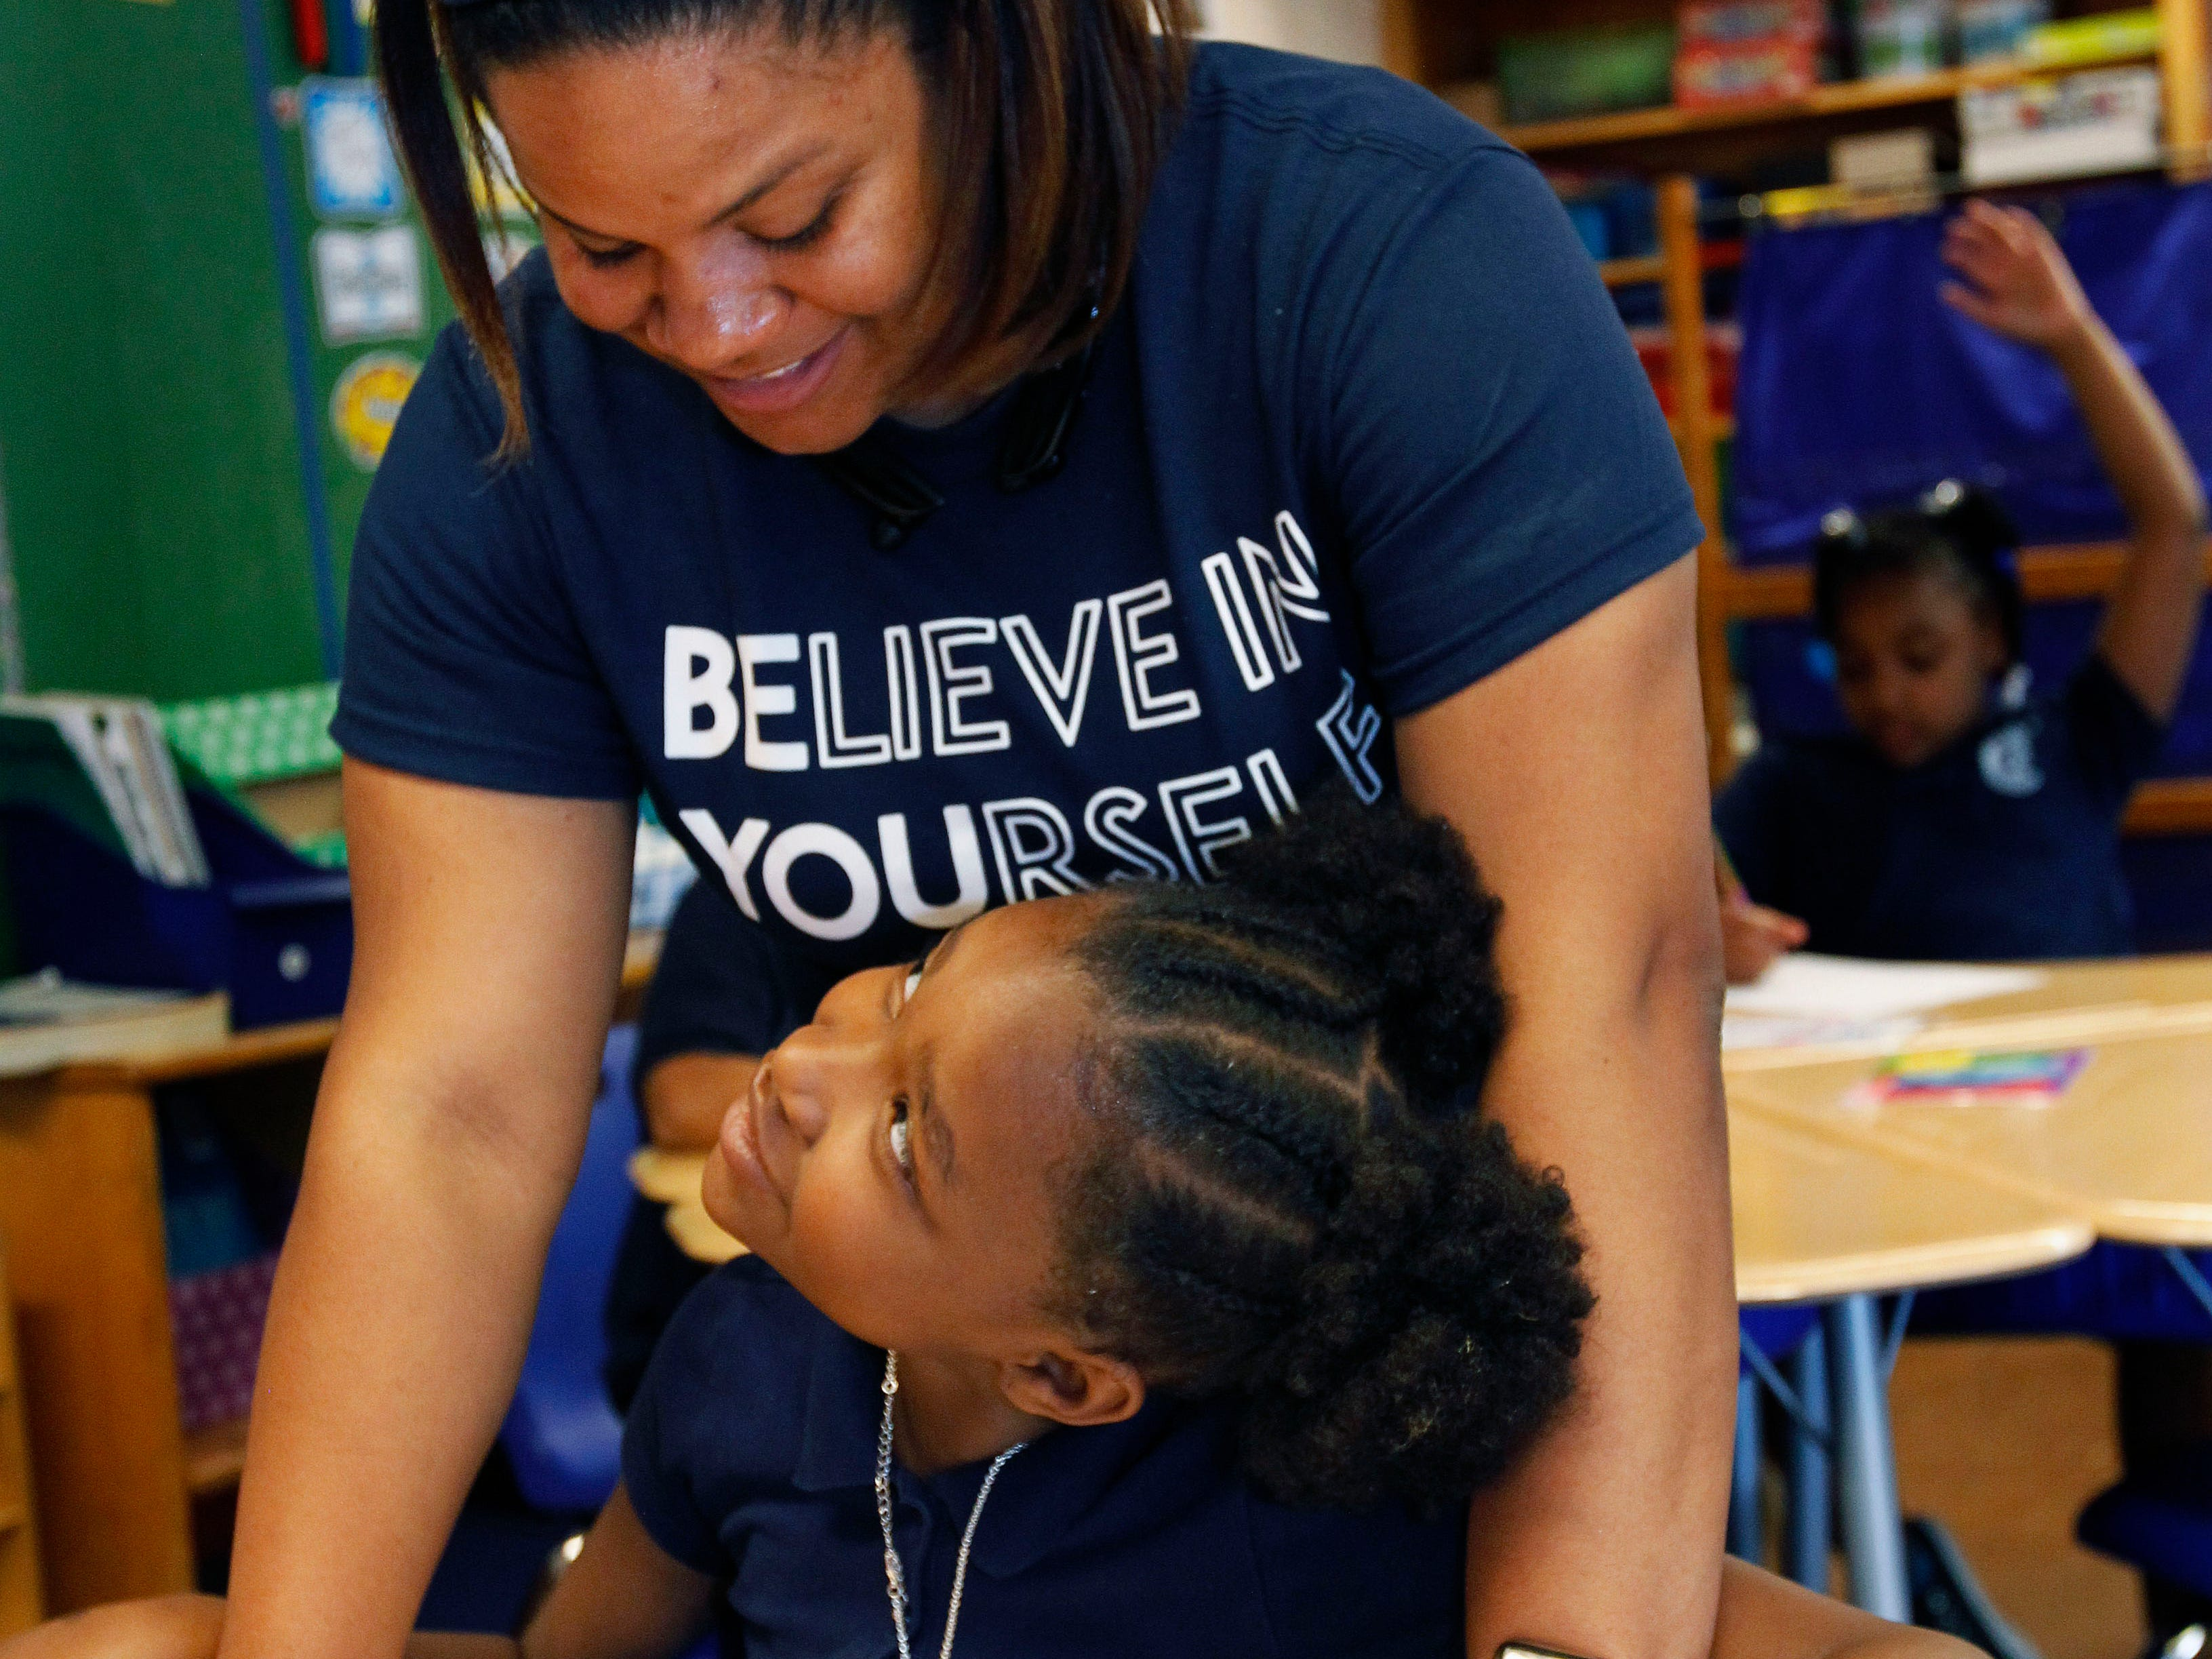 Third grade teacher Symona (cq) Gregory Harvey works with Kamariana Brown, 8, in preparation for a math test May 16 at Carver Academy. It's the first year at Carver for Gregory, who  is a former City Year staff member.  She was recently named teacher of the year at the school.